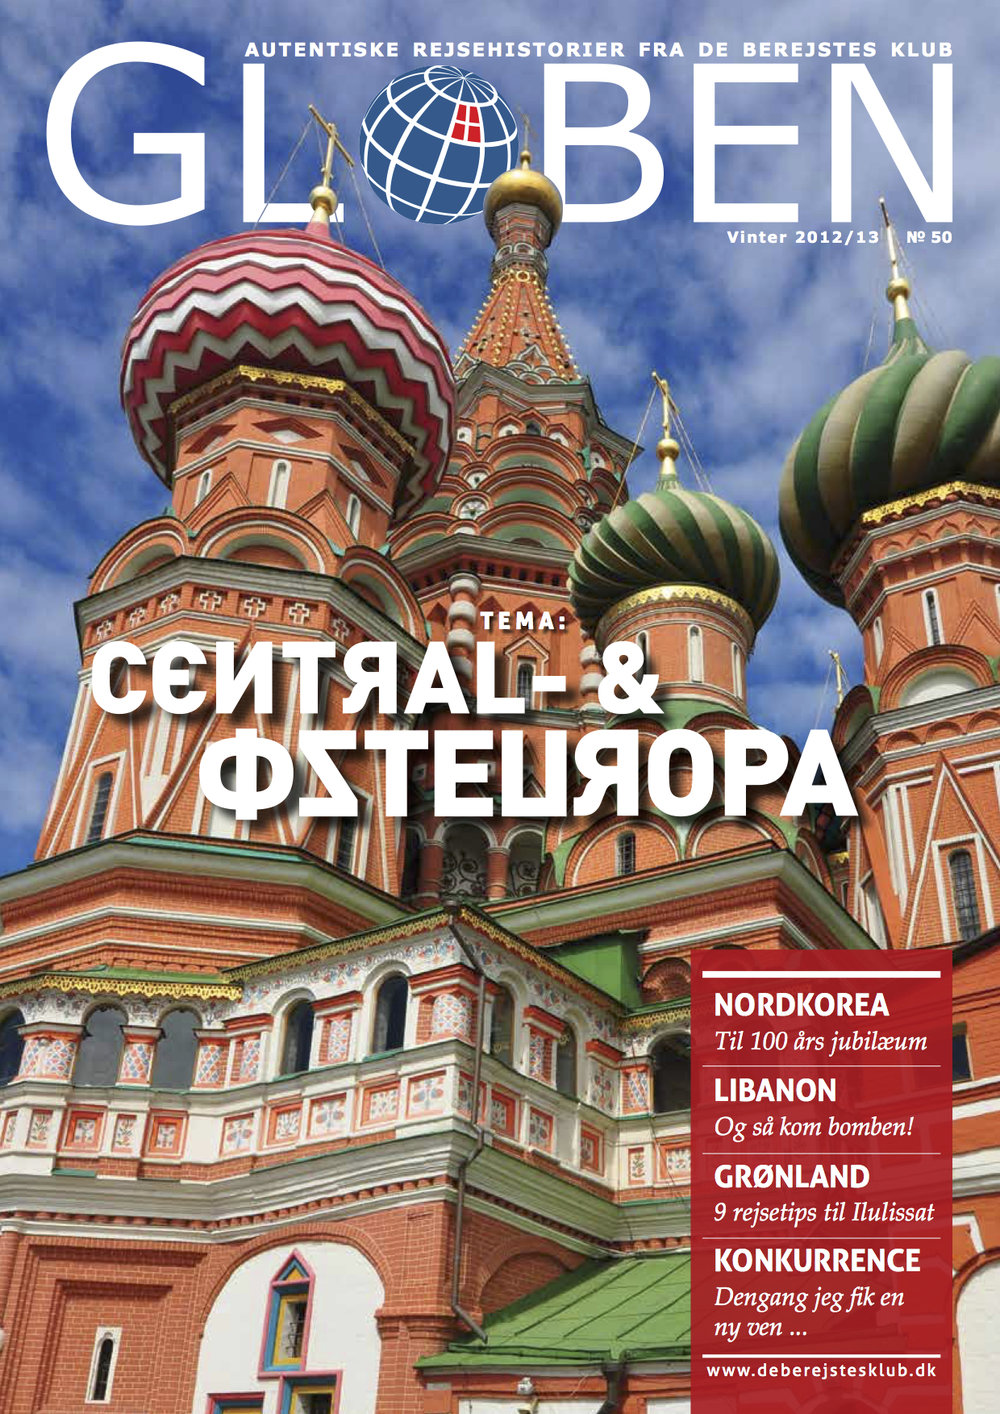 Issue 50: Central- & Østeuropa   My  first issue  I designed has stories on Central and East Europe, from Ukraine, Albania, Poland, Russia, Serbia, Lithuania, Austria, Slovakia, Slovenia, among others. The layout is redesigned and typography reviewed to make a transition towards a more consistent look throughout.